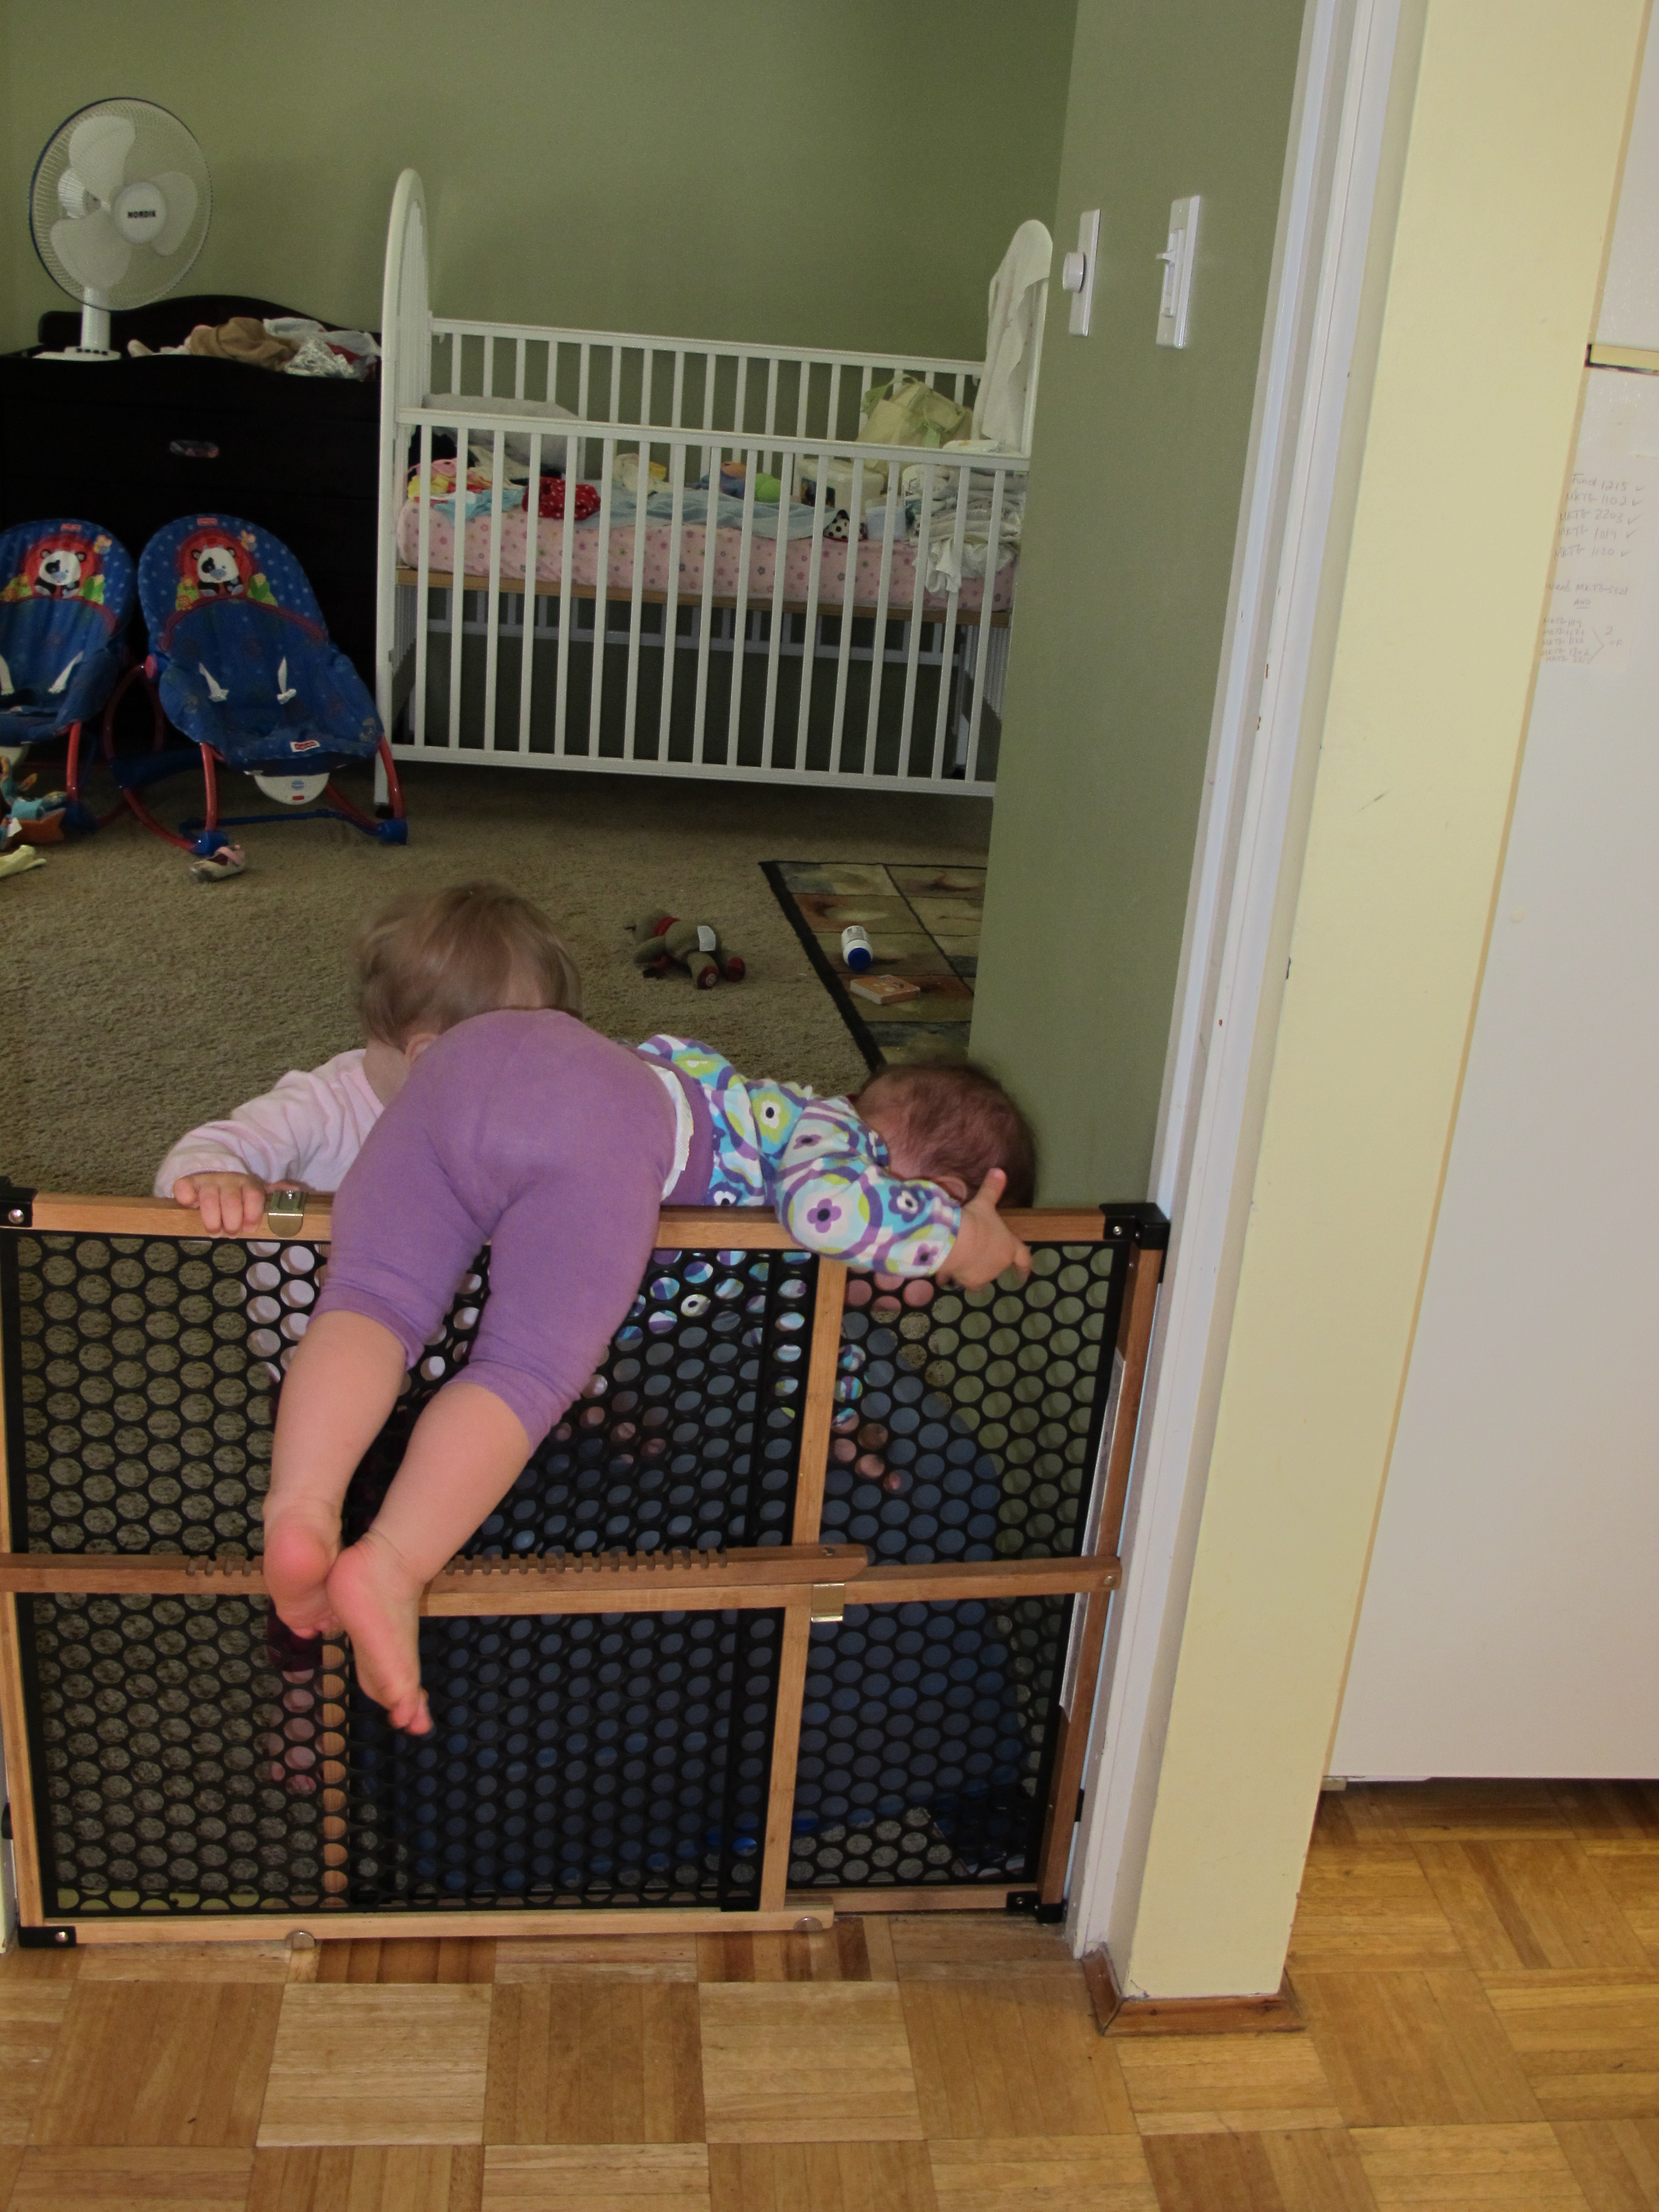 The Great Escape A Game Changer In Our Home A Dad In